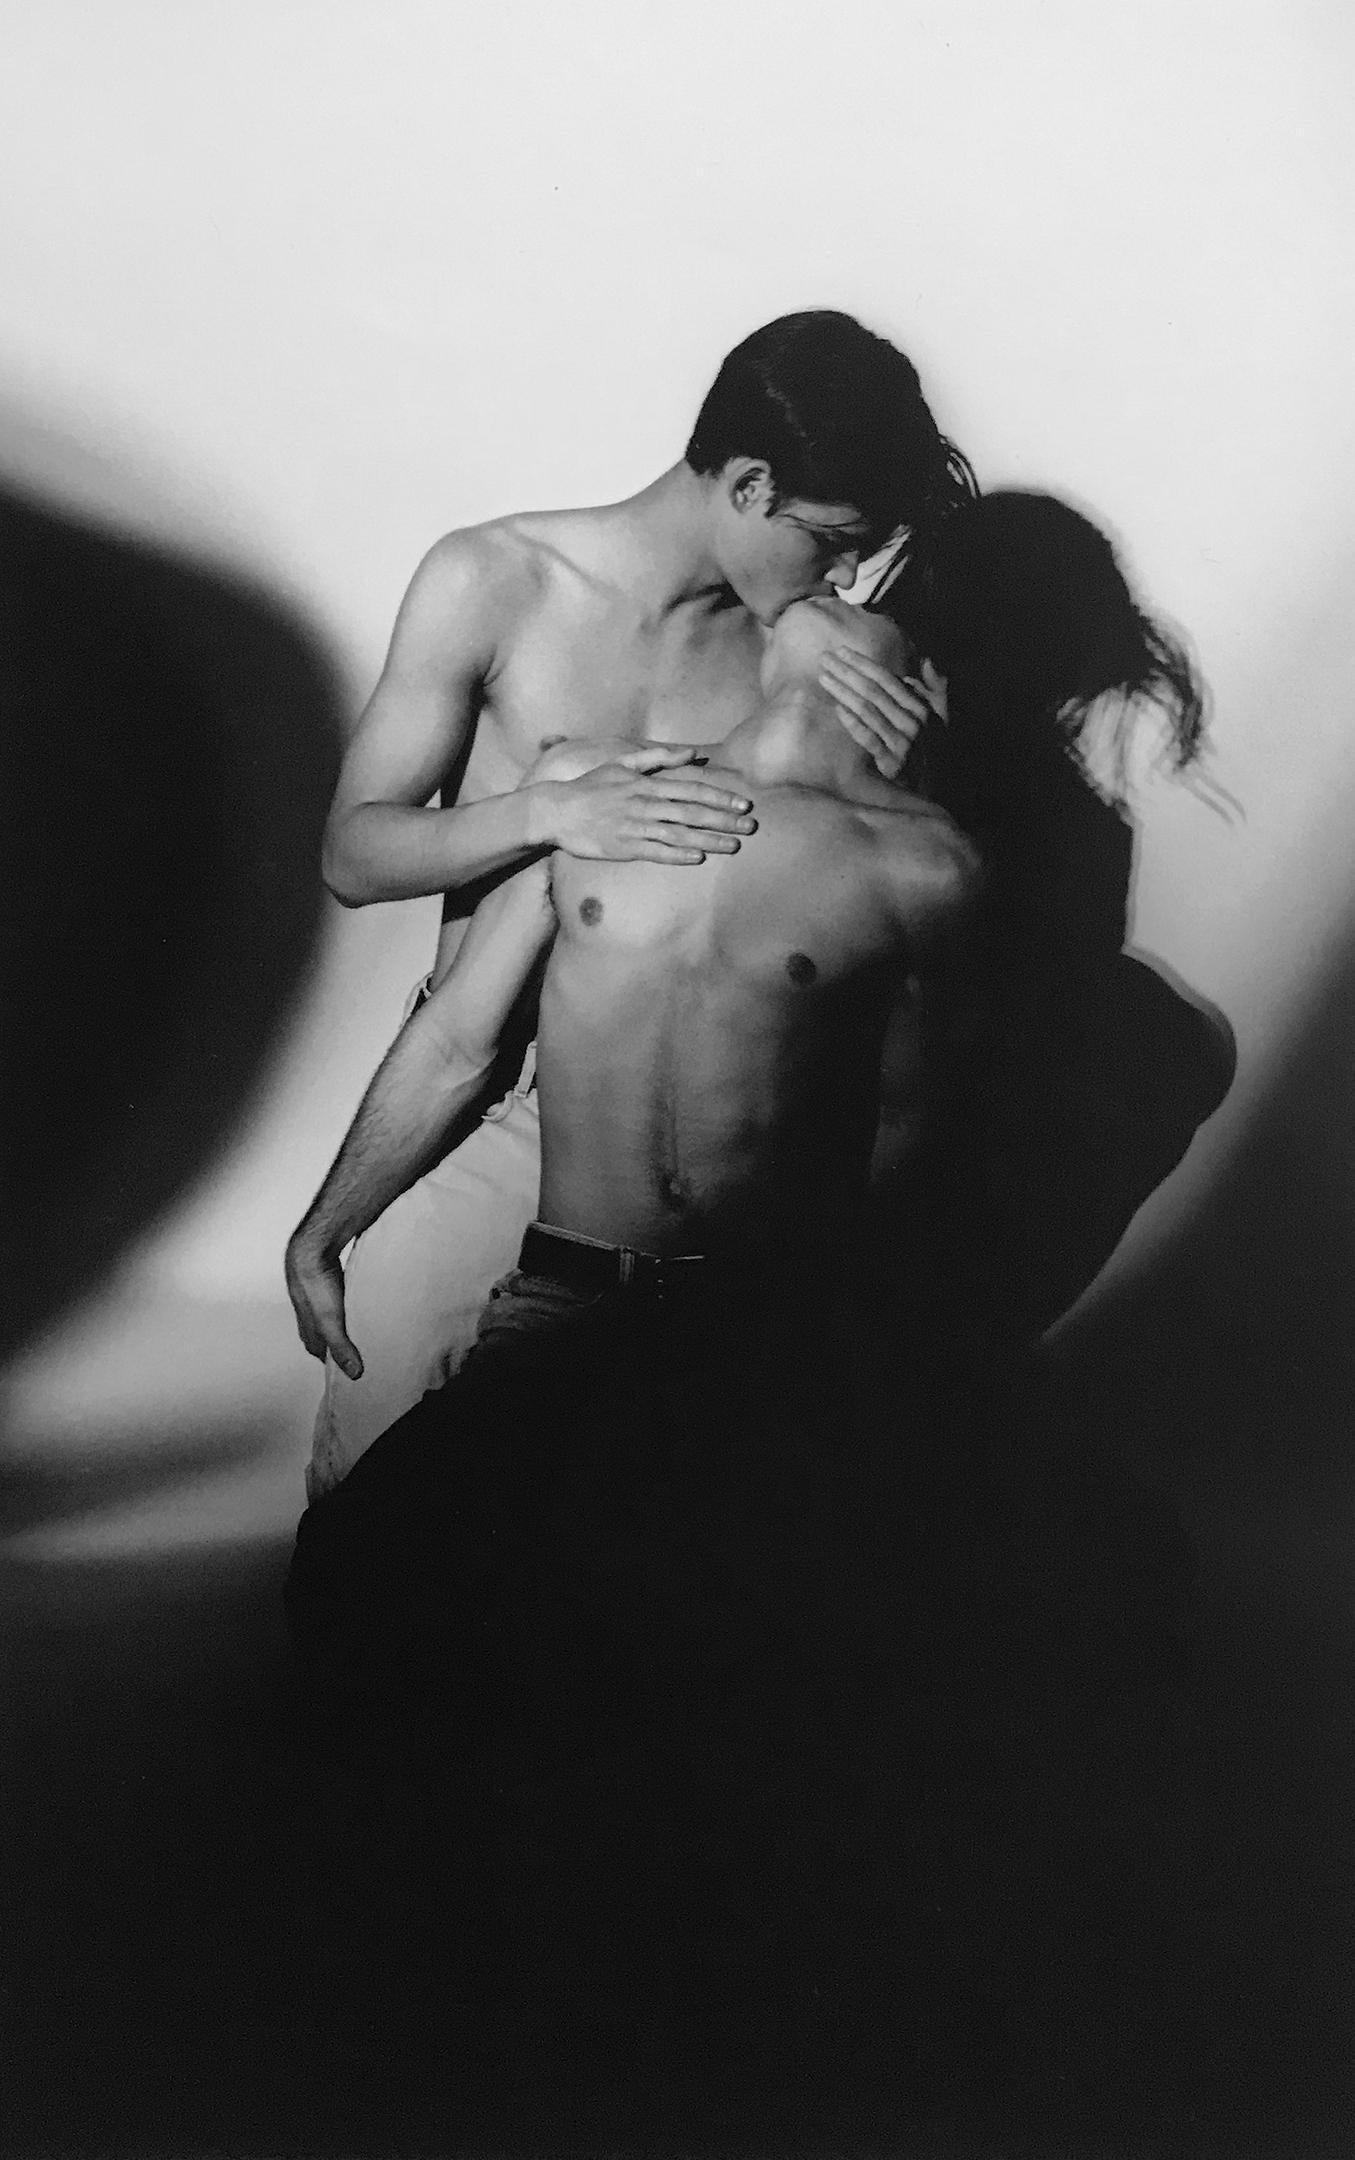 Male Bonding - Passionate Kiss with Dramatic Shadow, Black and White Photograph